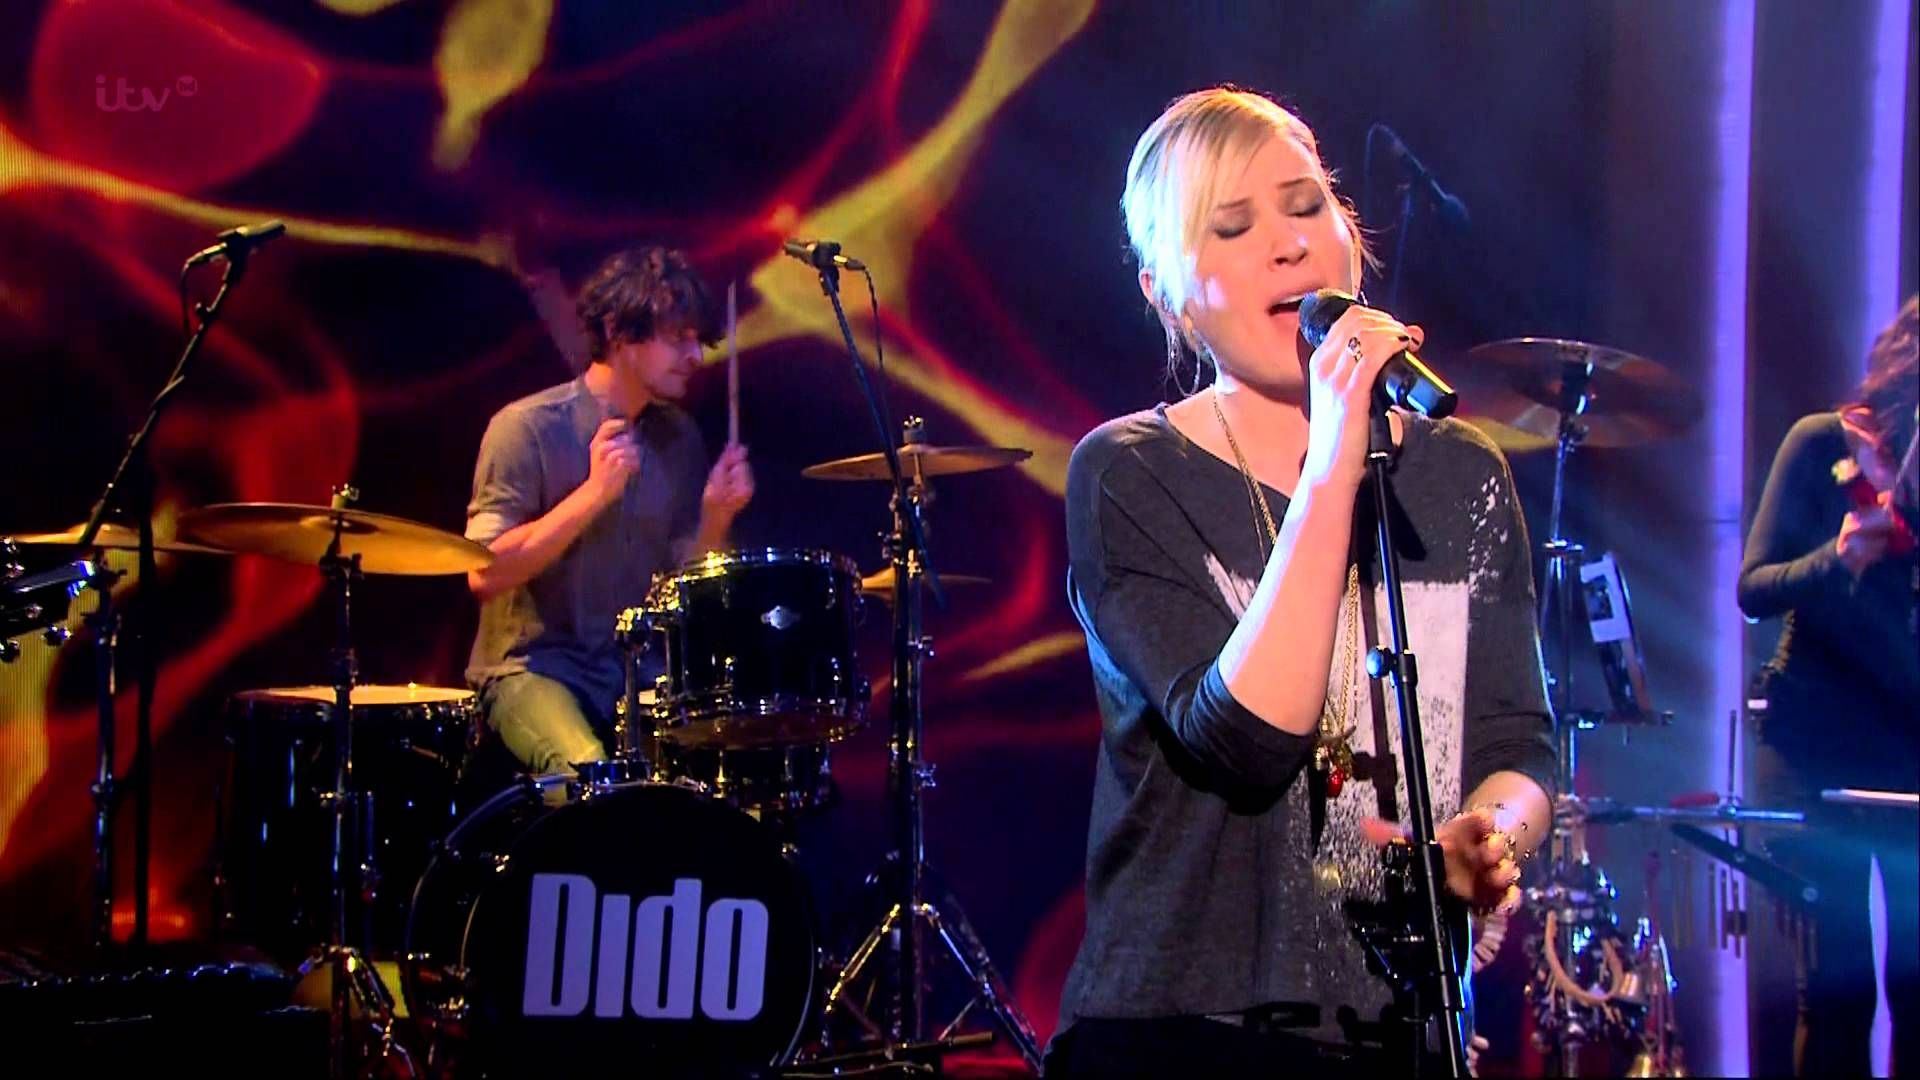 Dido White Flag The Paul O'Grady Show 26th Nov 2013